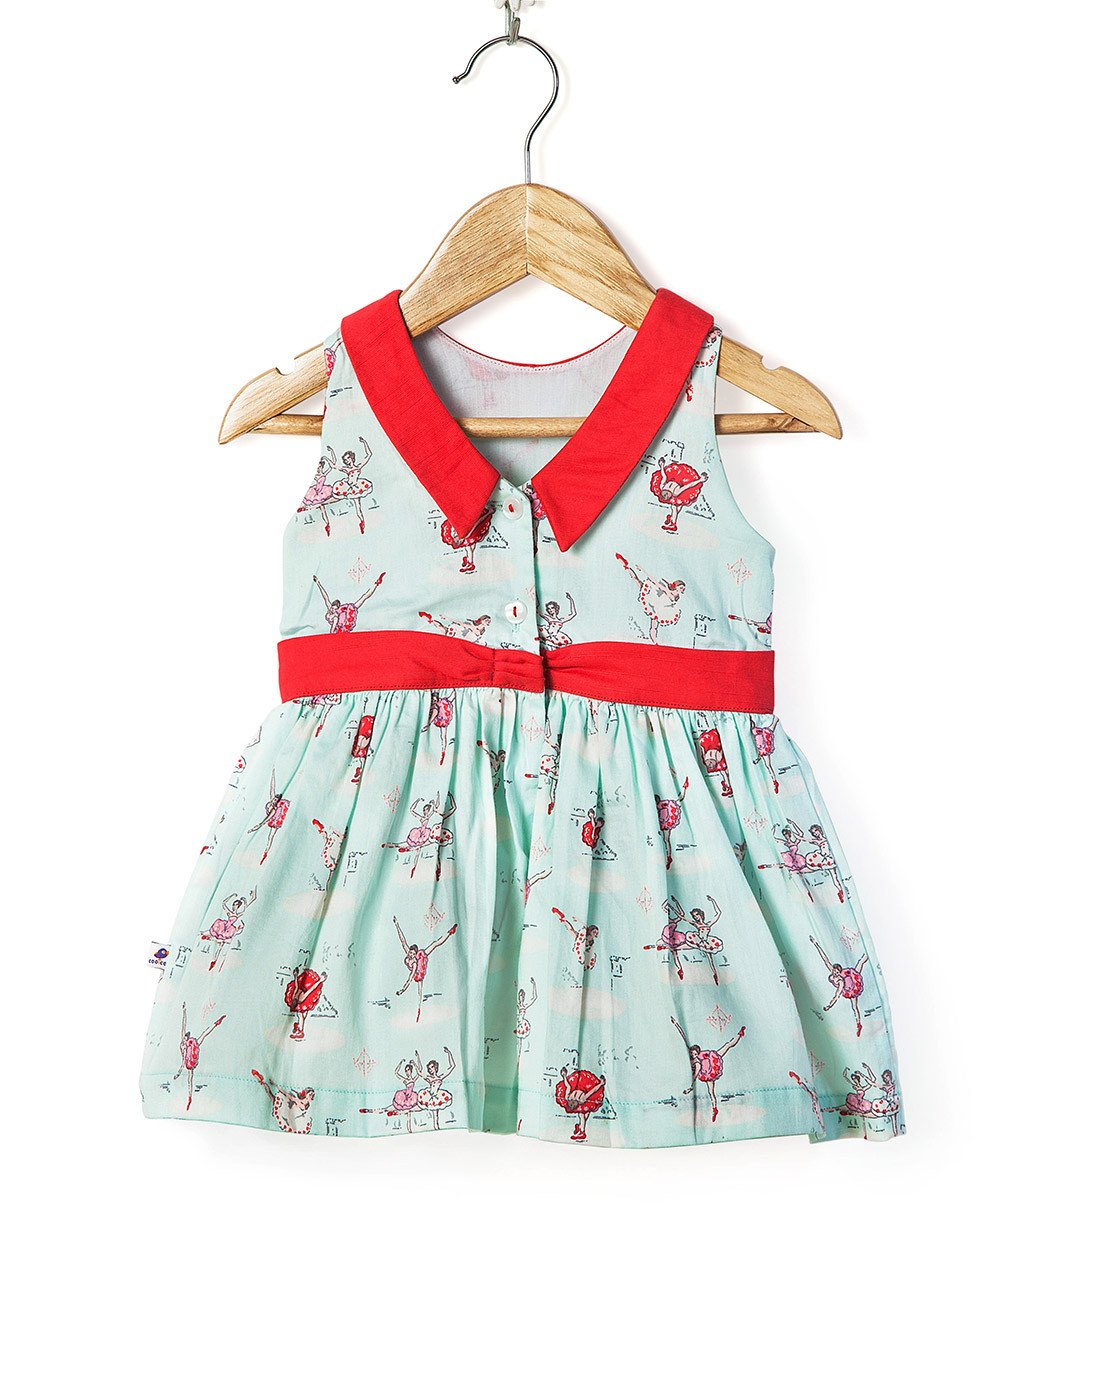 Peter Pan Ballerina Dress